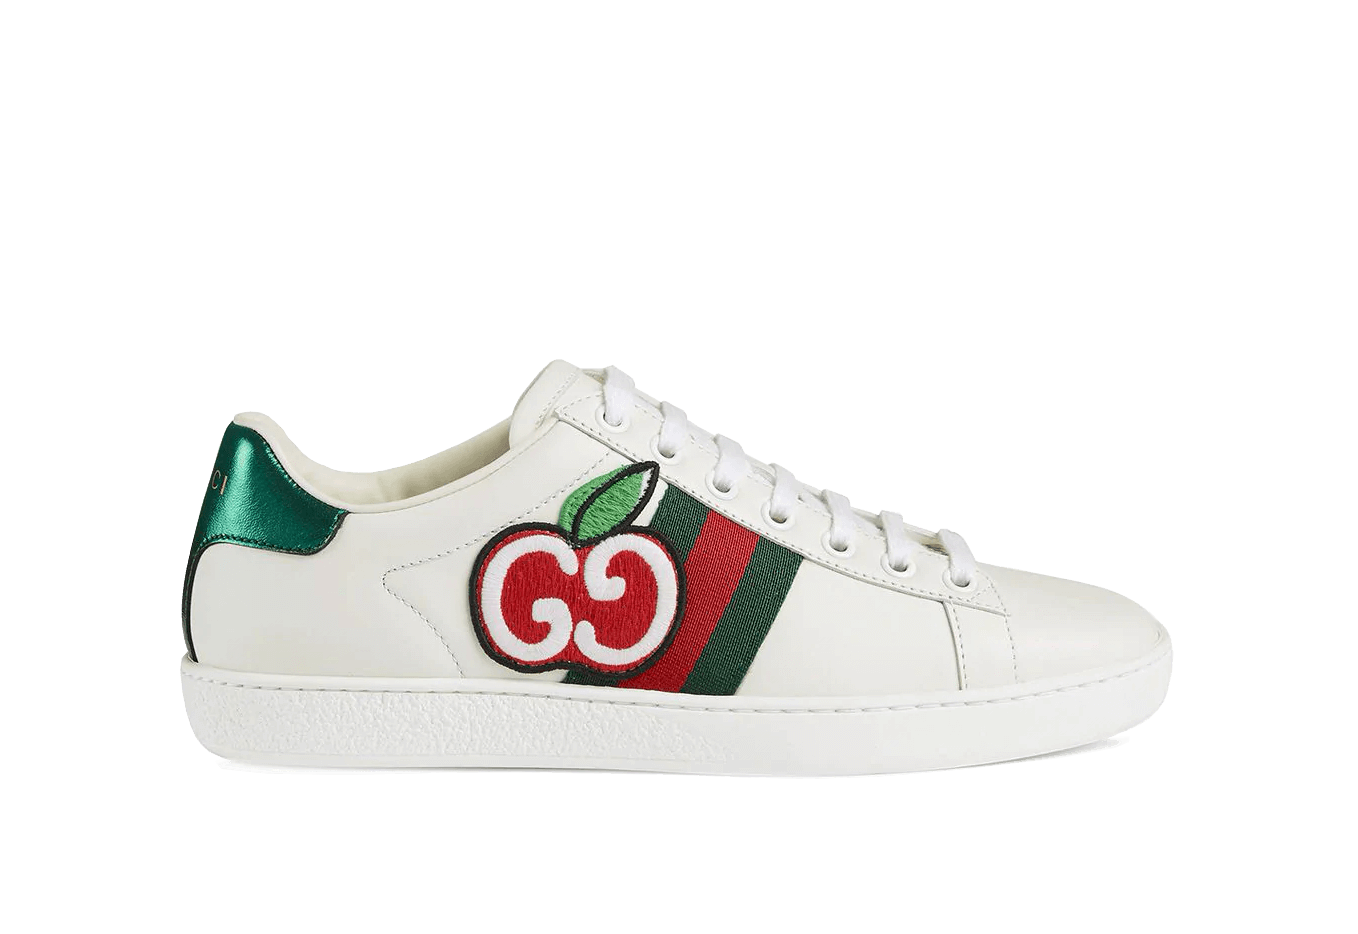 Buy New Gucci     GG Apple Sneakers sneakers